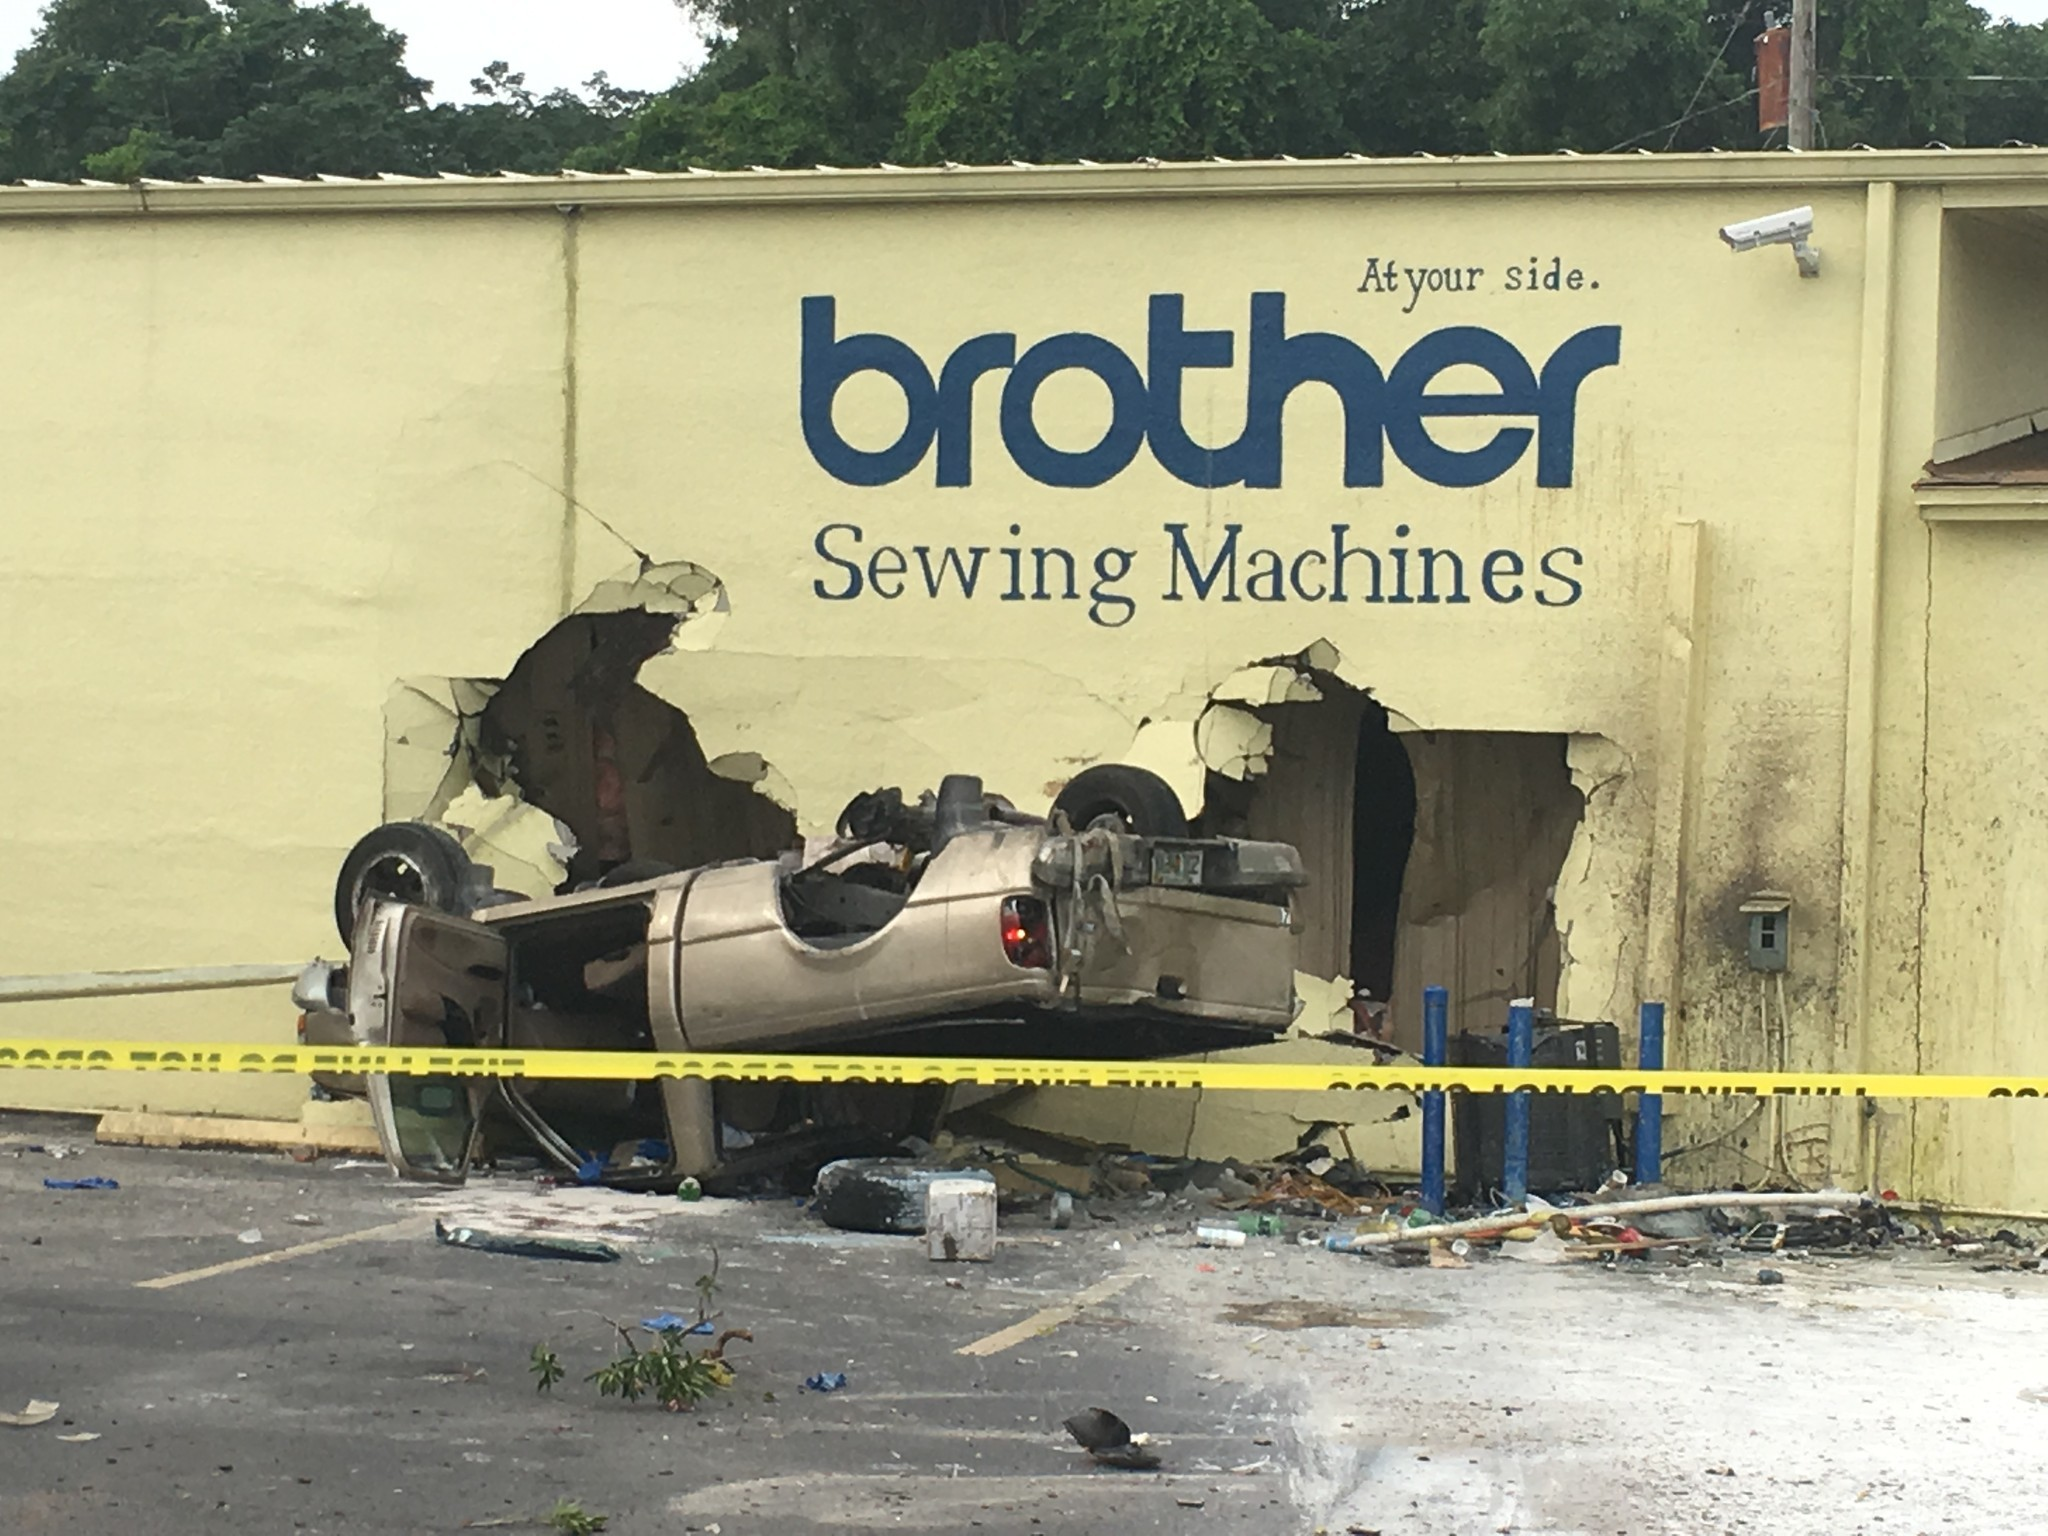 Pickup flips, crashes through building in Maitland - Orlando Sentinel